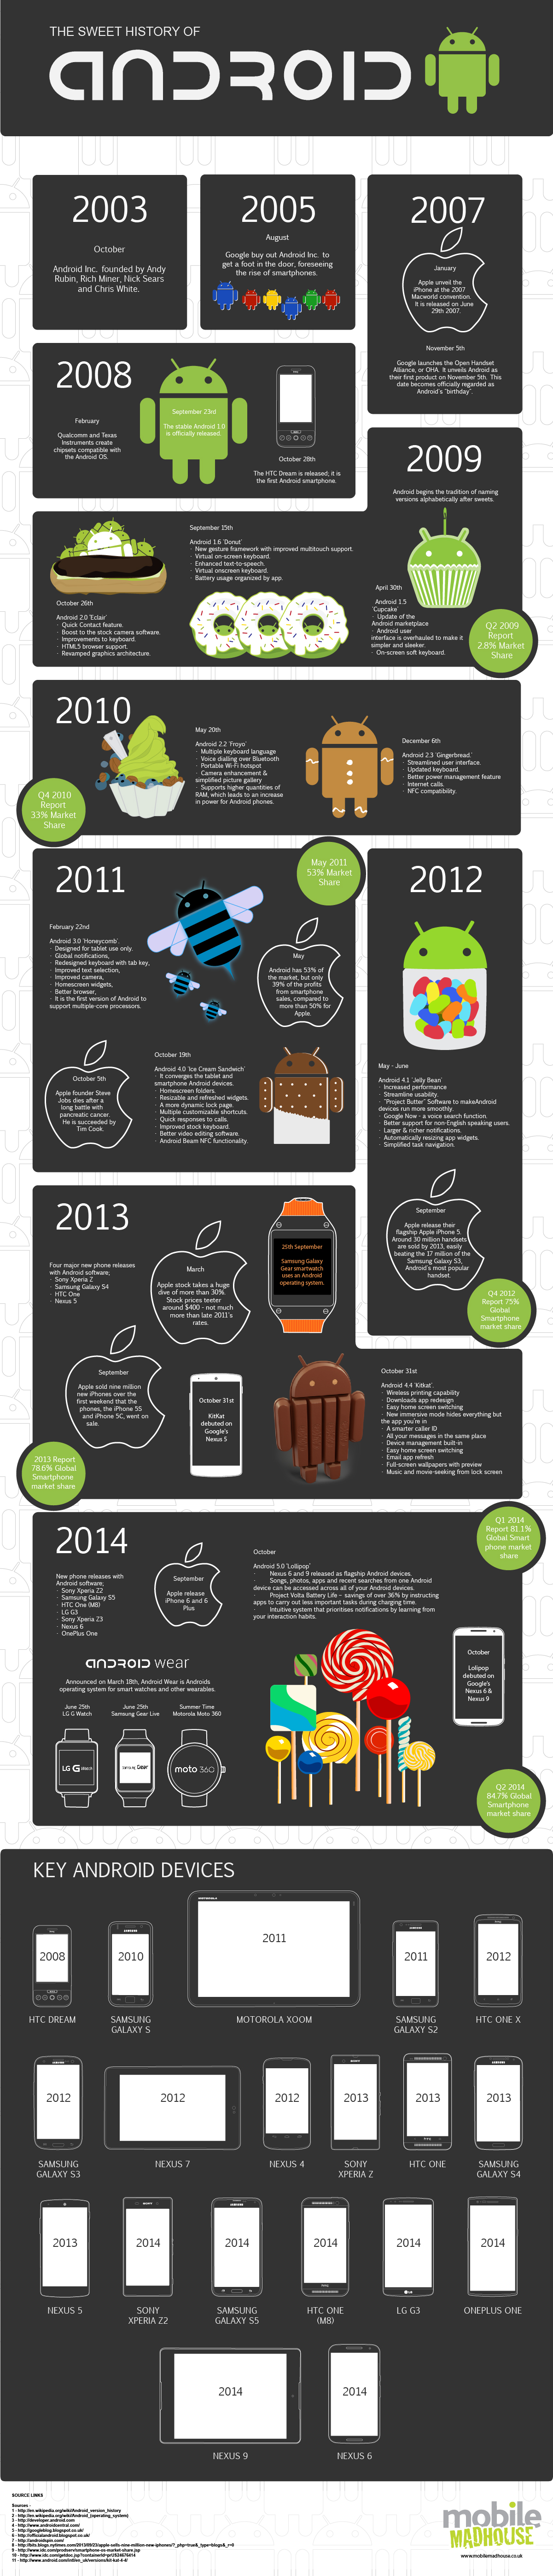 A Sweet History Of Android